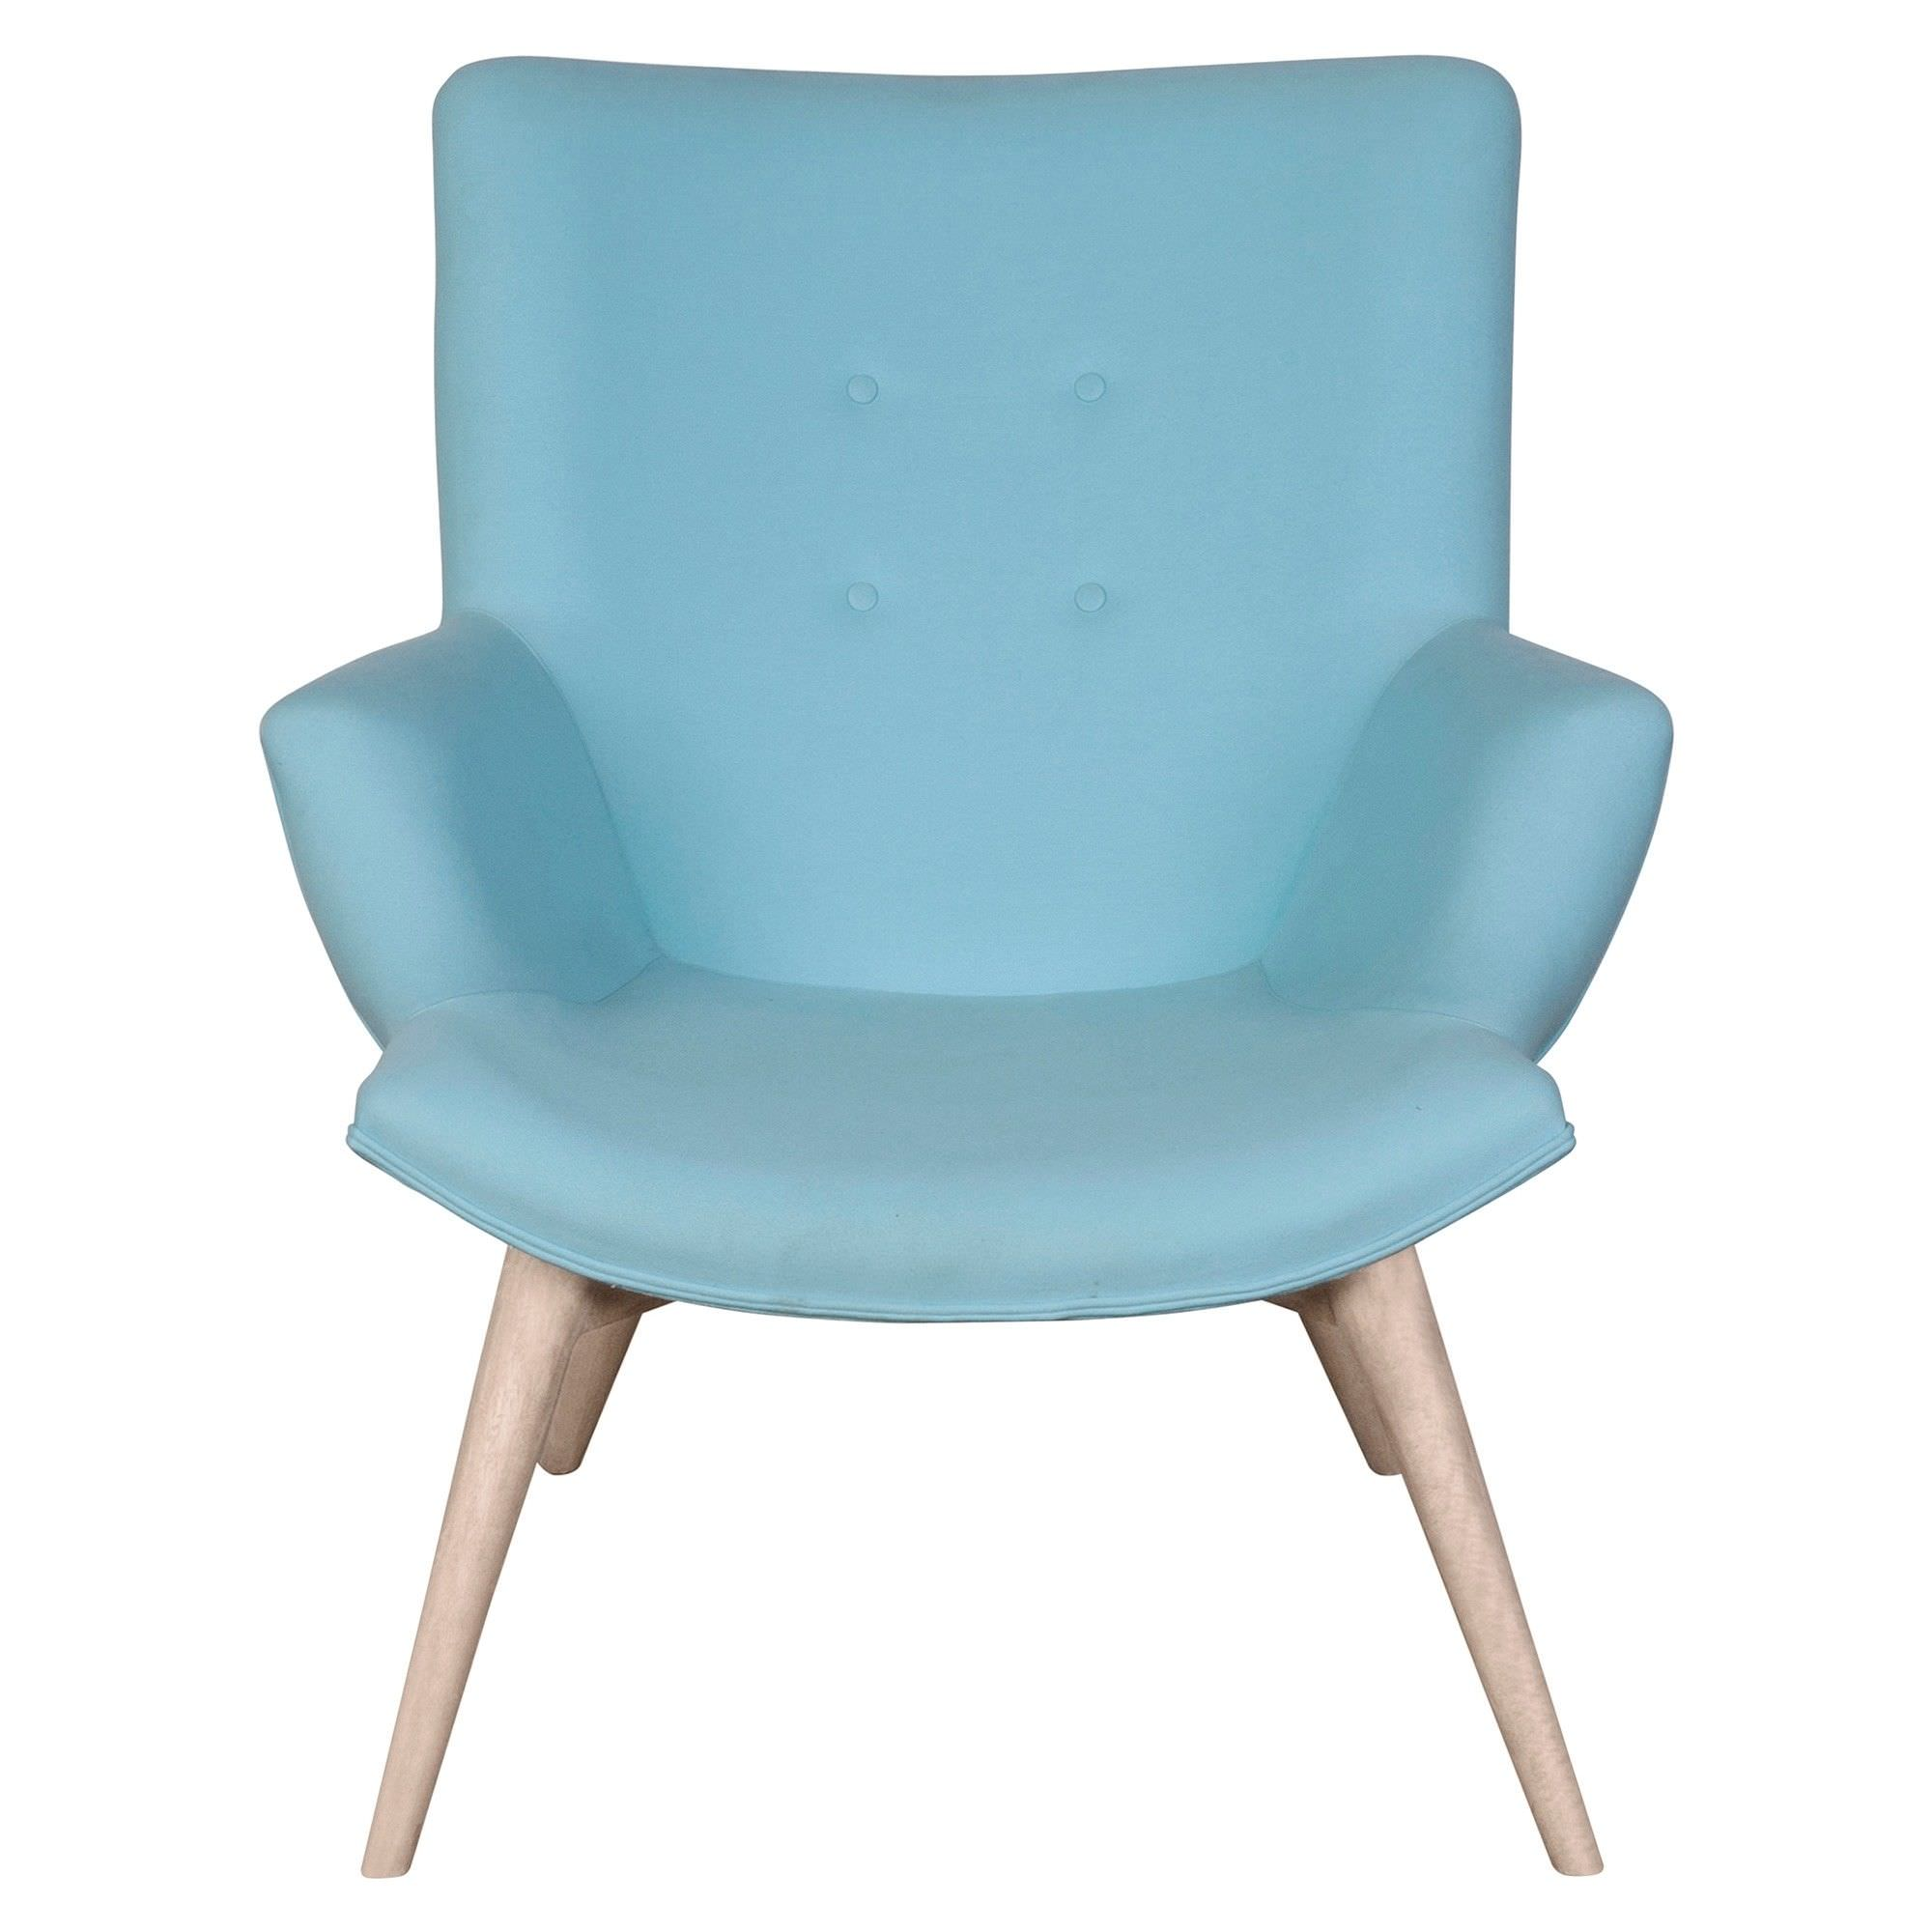 Molton Hand Crafted Fabric Armchair, Blue